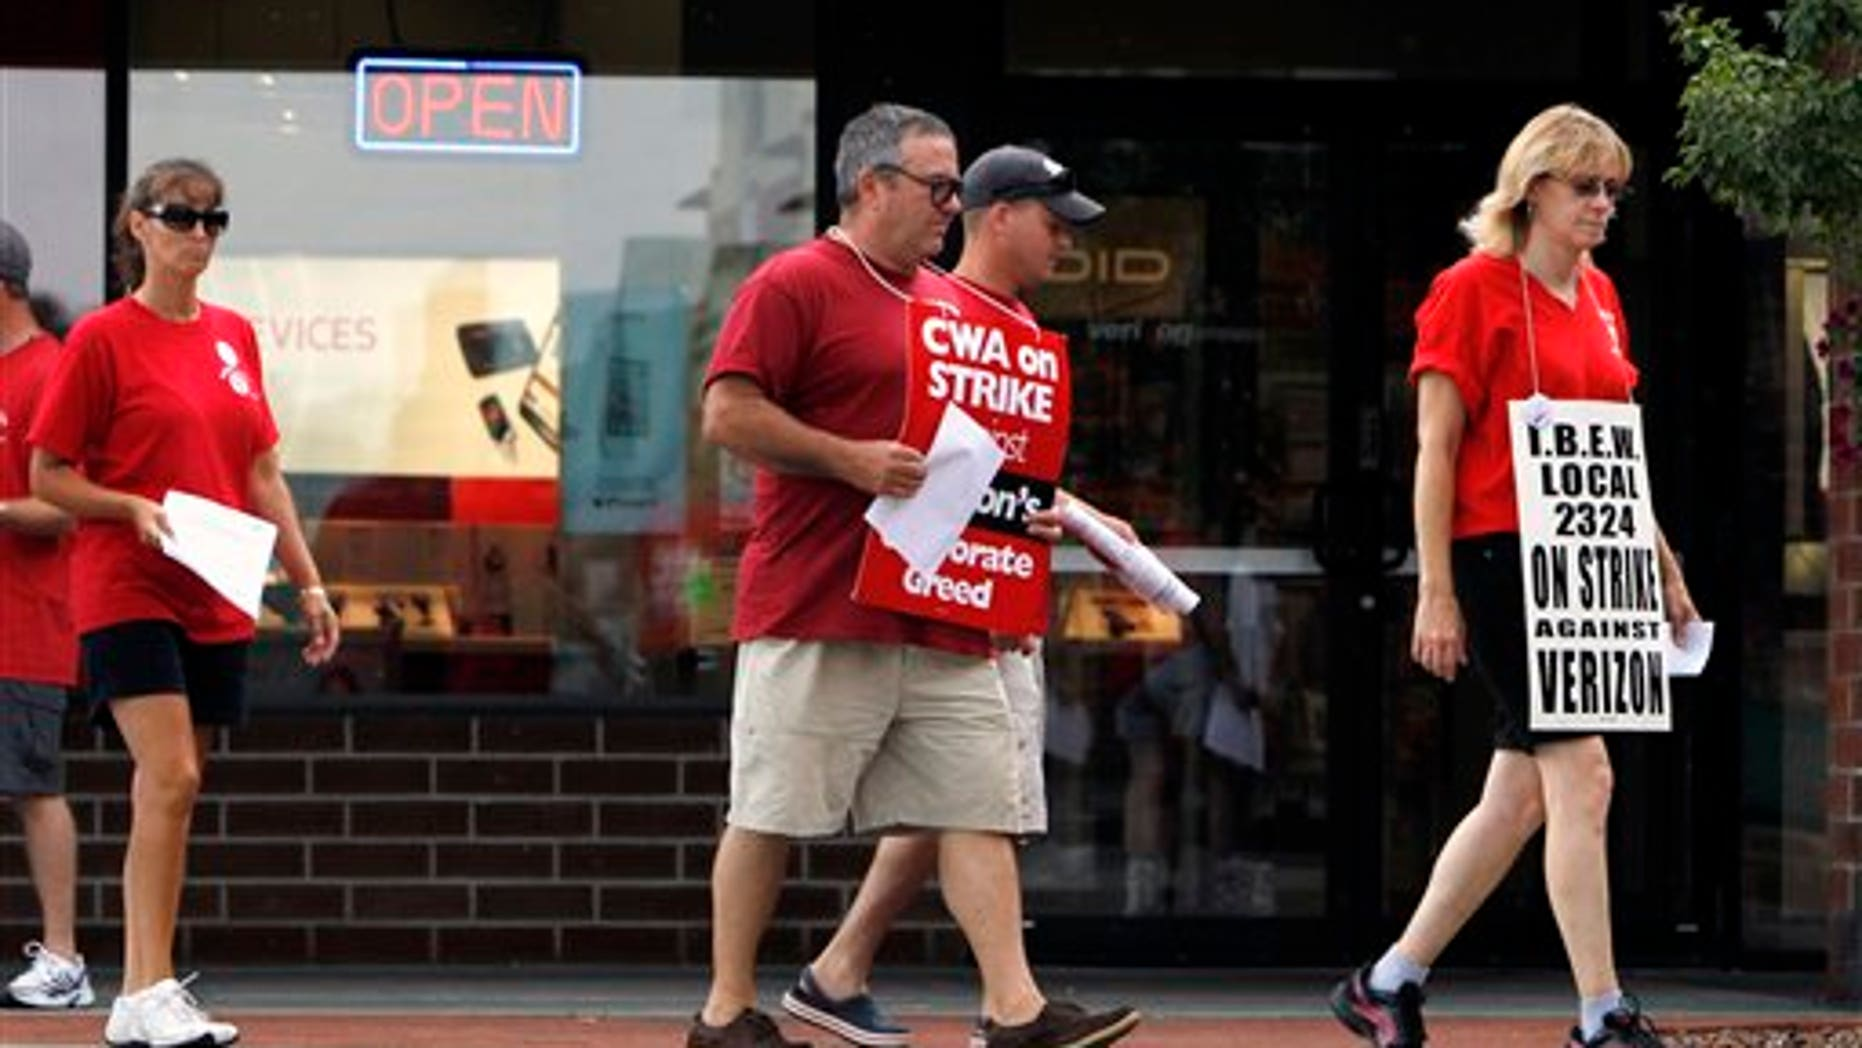 August 8: Striking Verizon workers picket in front of a Verizon Wireless store in Colonie, N.Y.